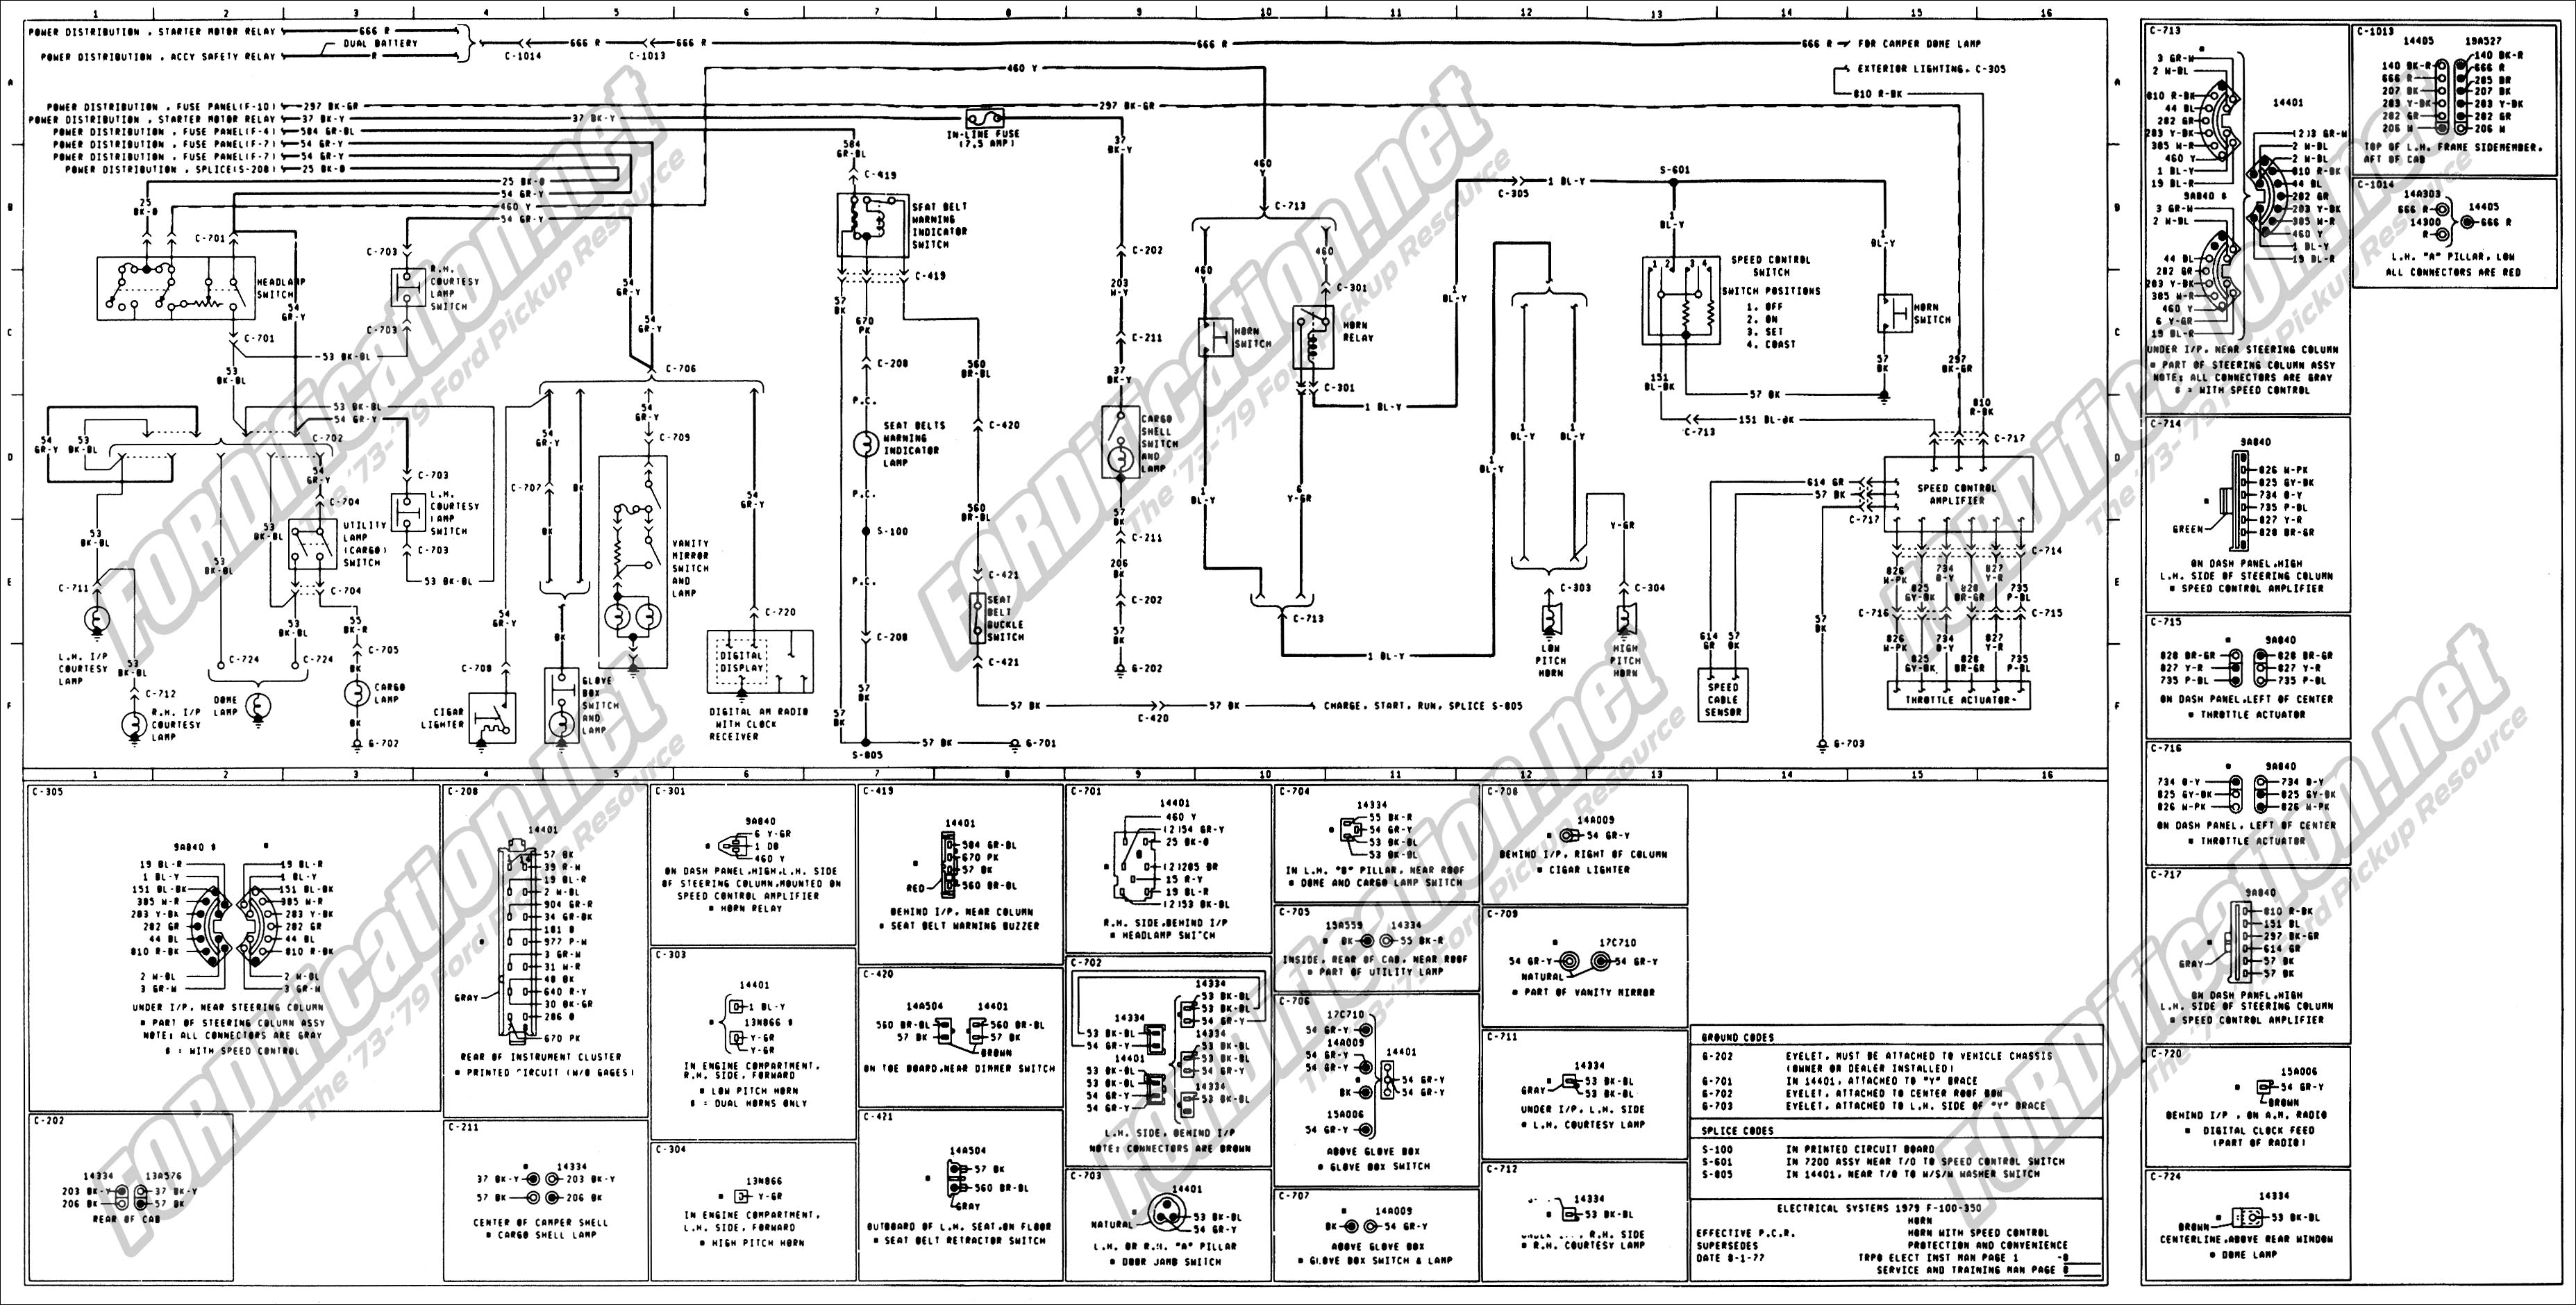 1979 Ford 460 Wiring Diagram Diagrams Engine Exploded 1973 Truck Schematics Fordification Net Rh Firing Order Parts